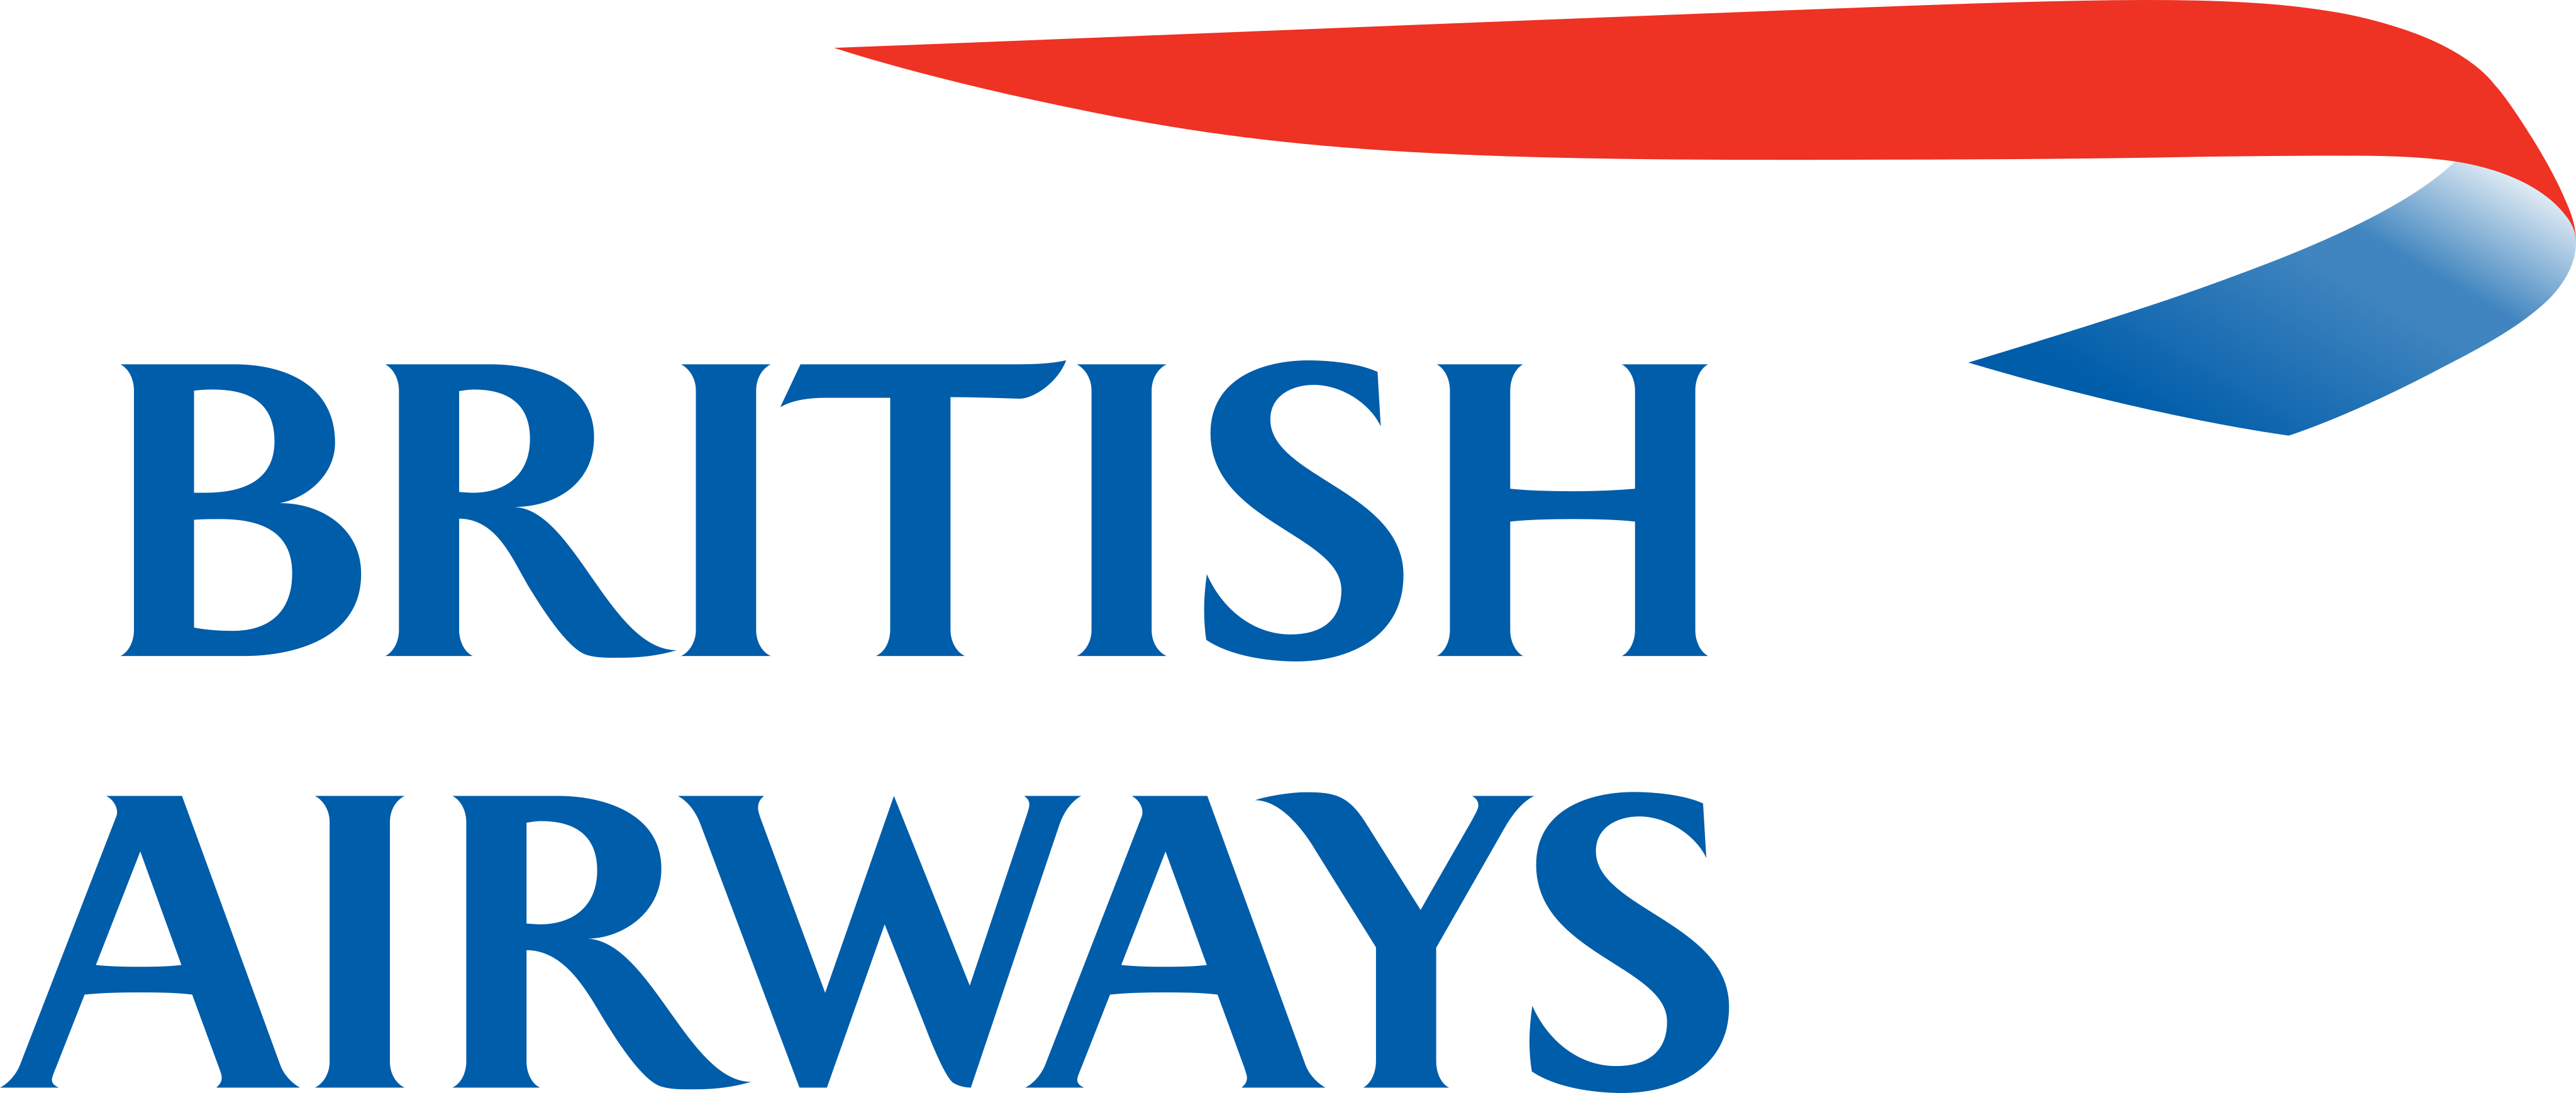 british airways logo 1 - British Airways Logo